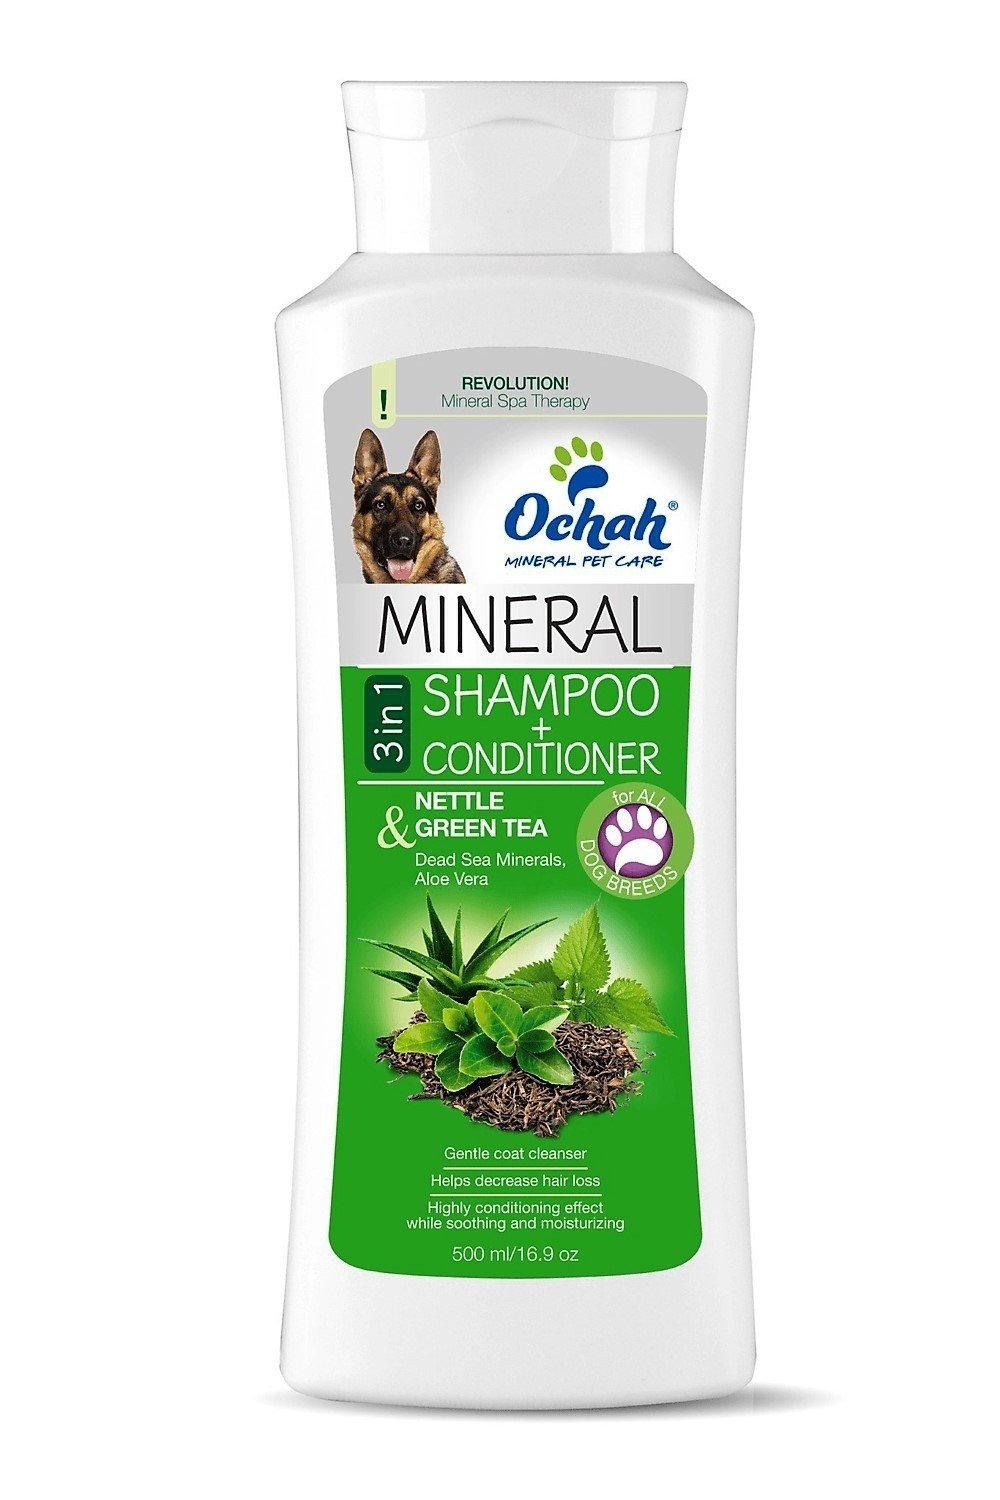 Ochah Mineral 3 in 1 Shampoo & Conditioner for Sensitive Skin w/ Nettle & Green Tea- Decreases Shedding, Provides Relief for Itchy Skin, & Promotes a Soft Tangle Free Coat - 16.9oz